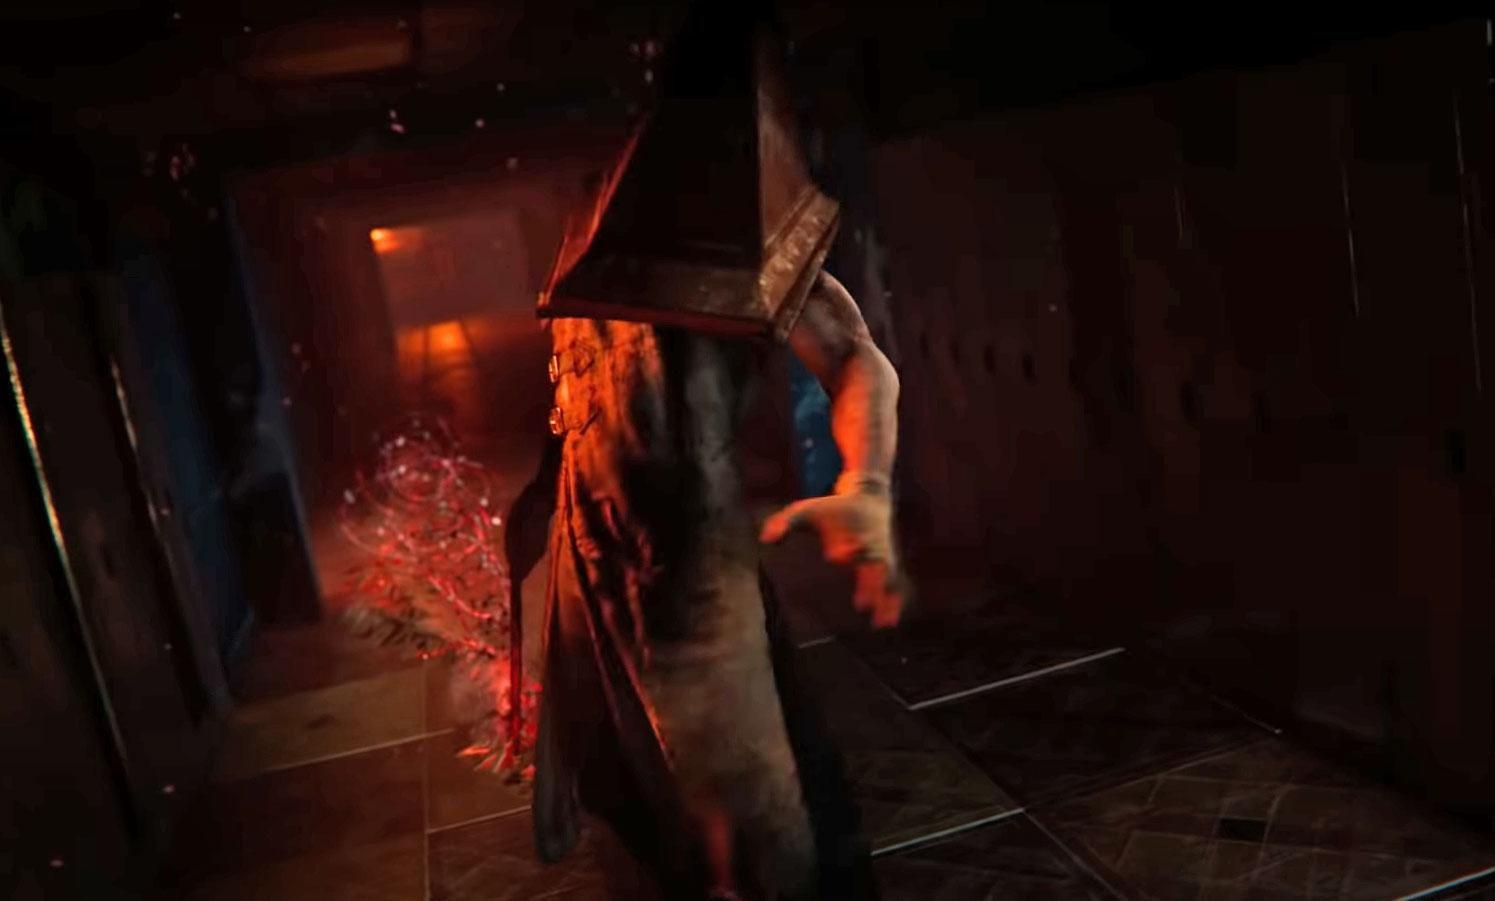 The Next Dead By Daylight Killer Is Pyramid Head From Silent Hill